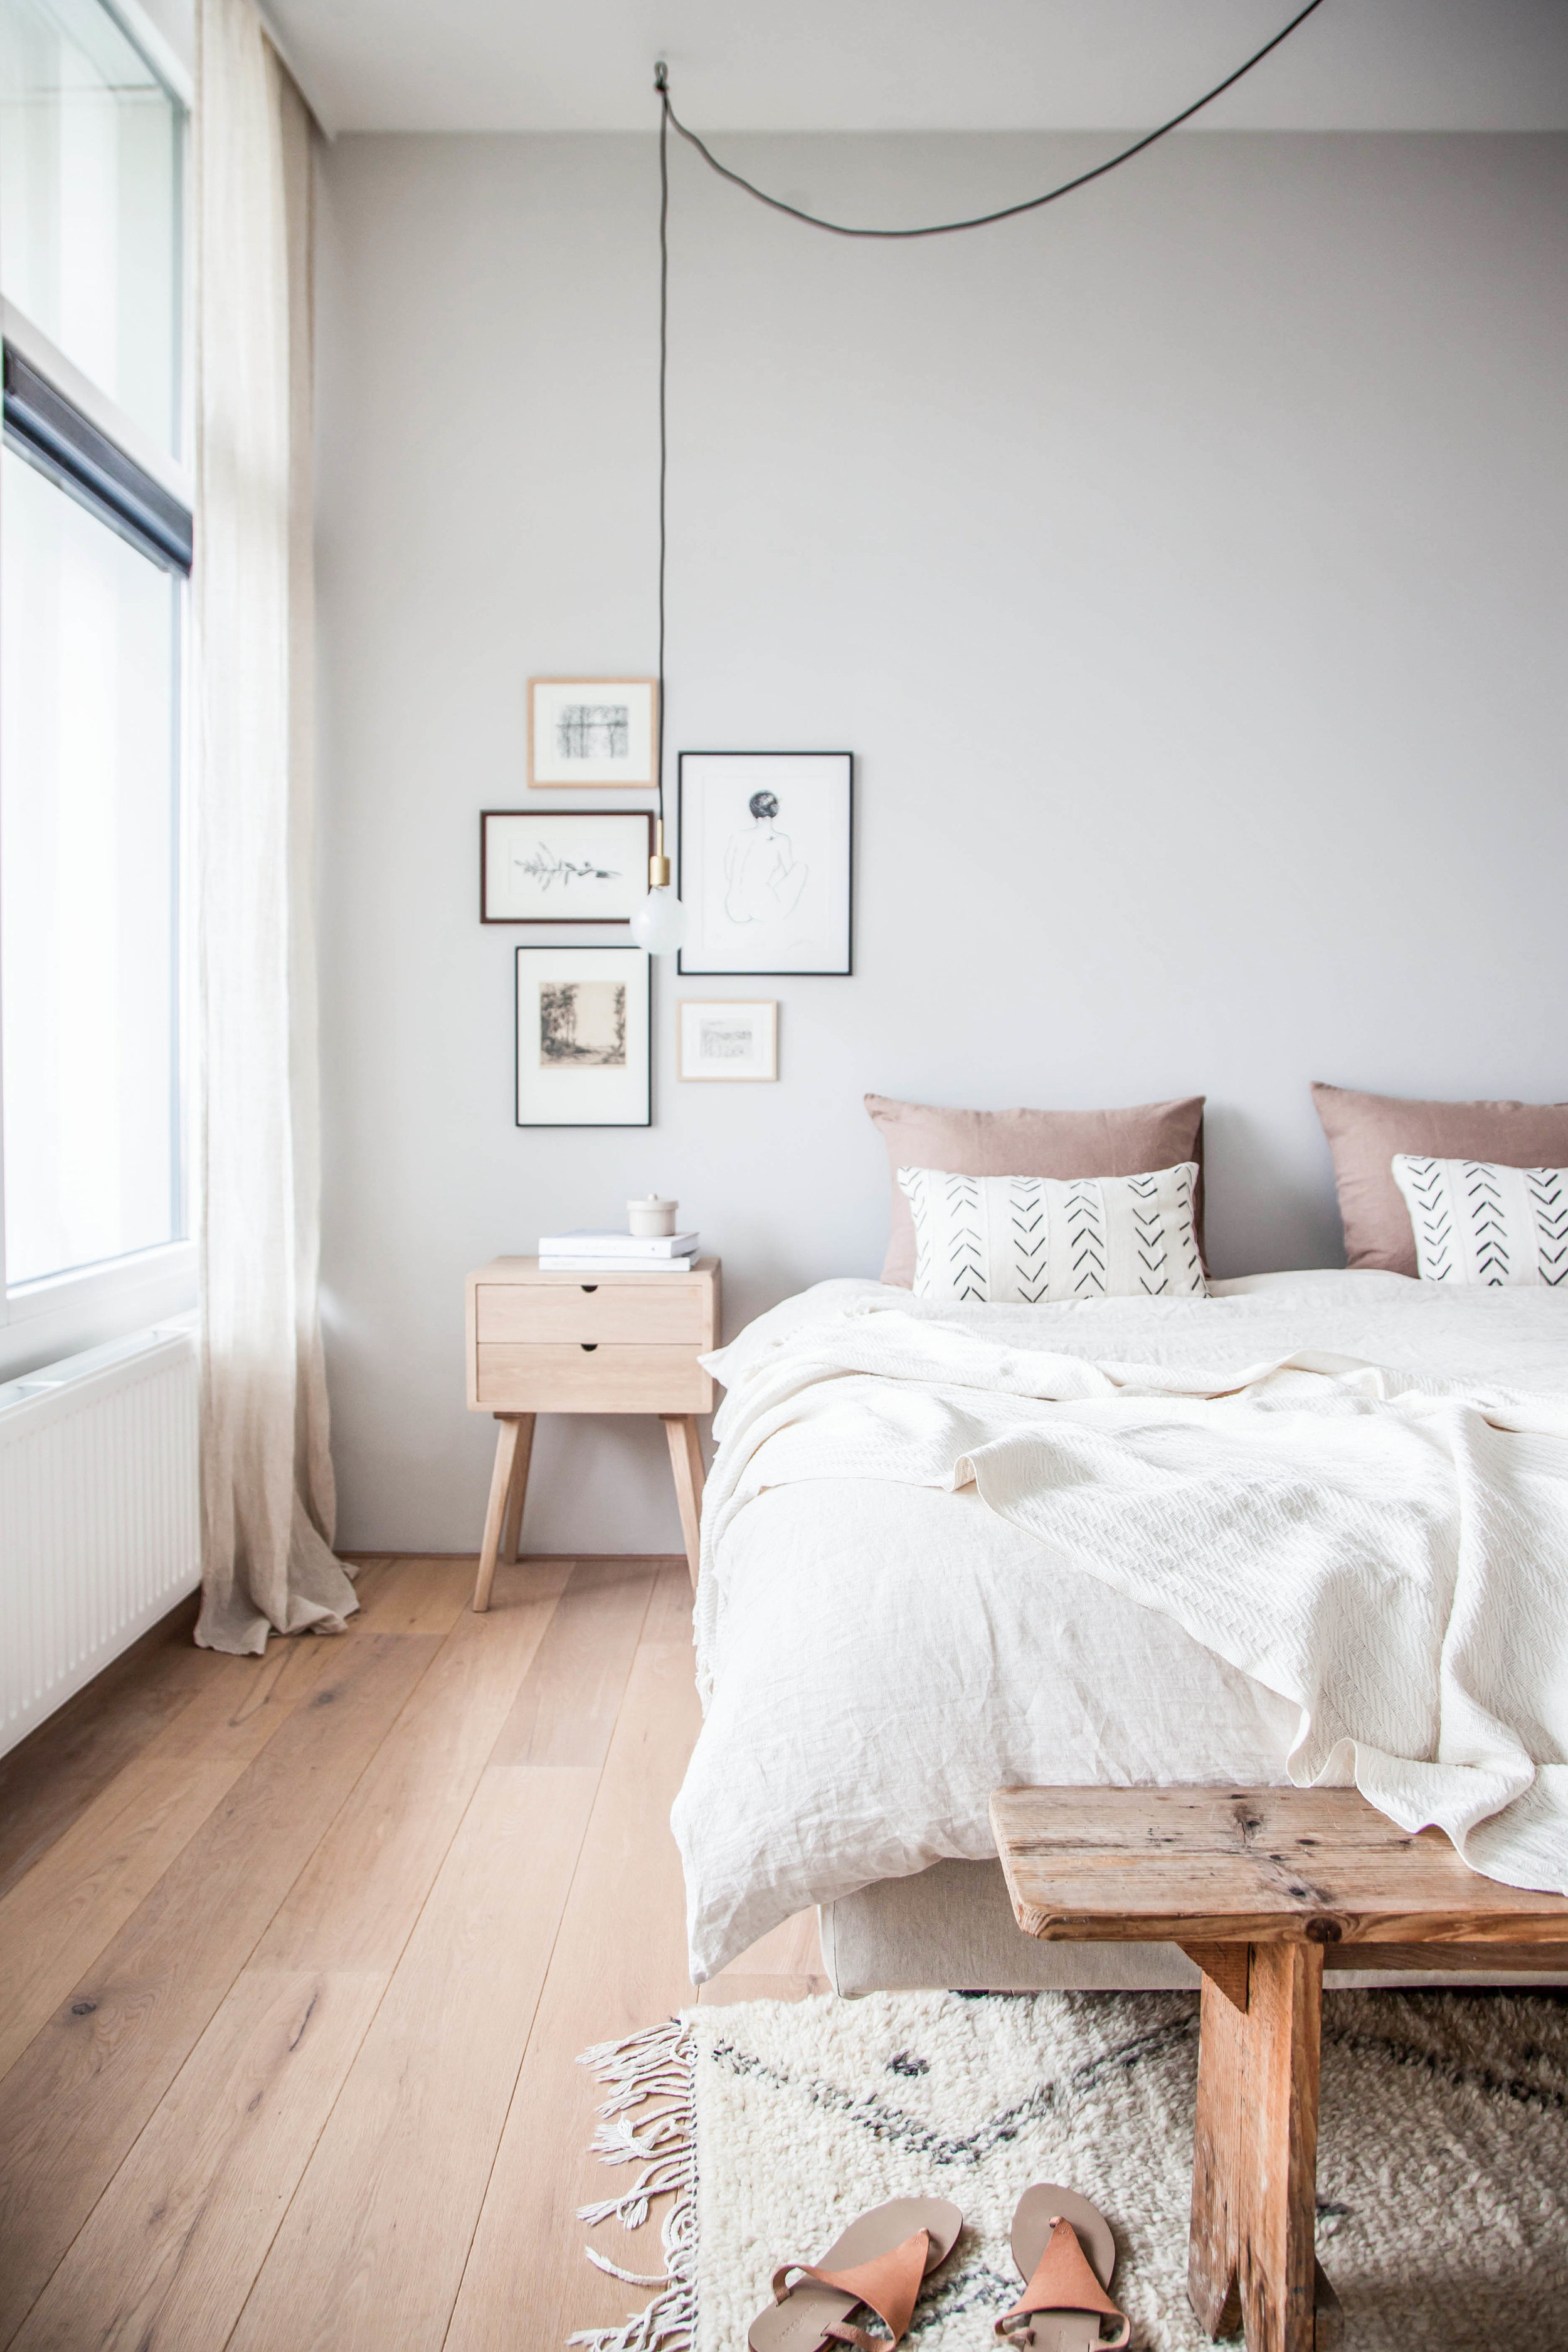 Image by  homedeco